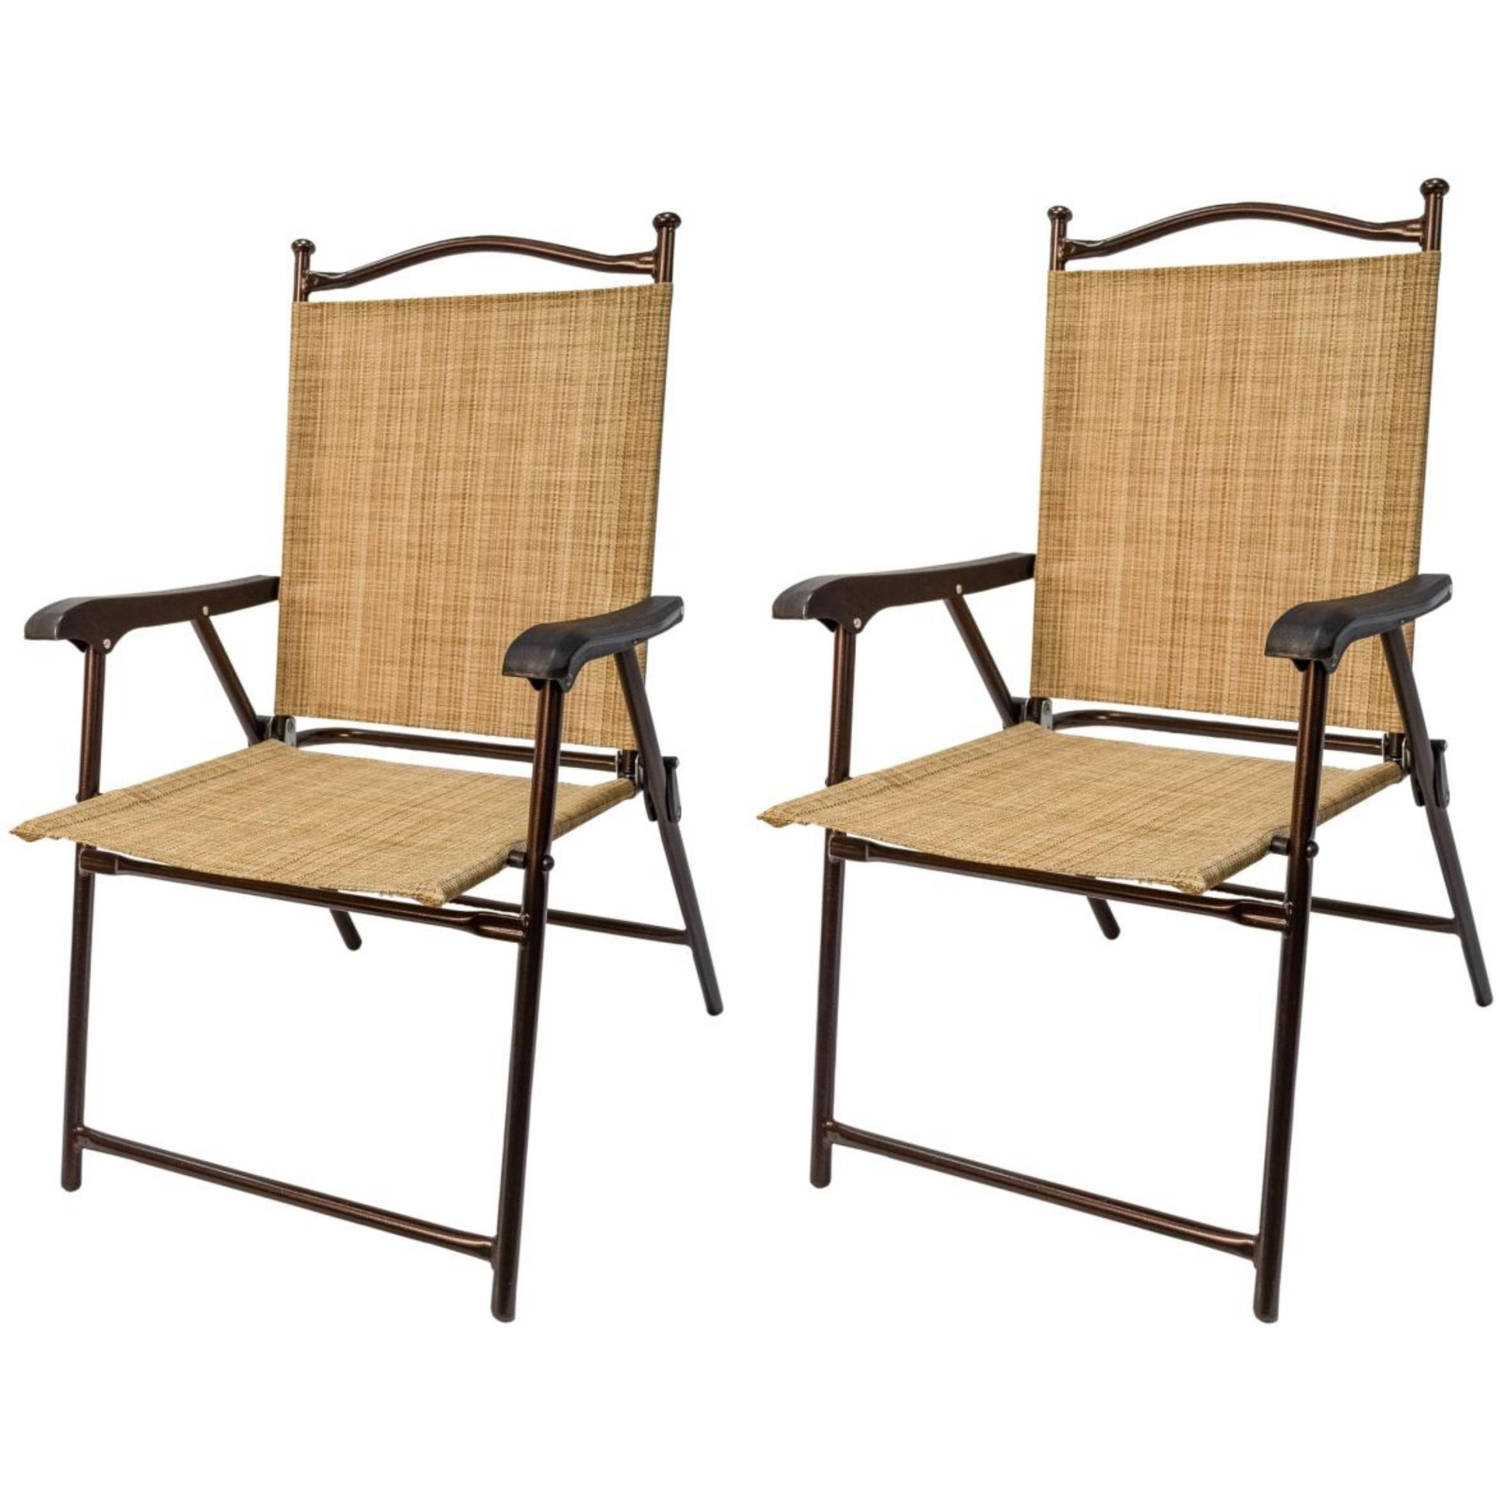 sling black outdoor chairs, bamboo, set of 2 image 1 of 5 OPOSMYF